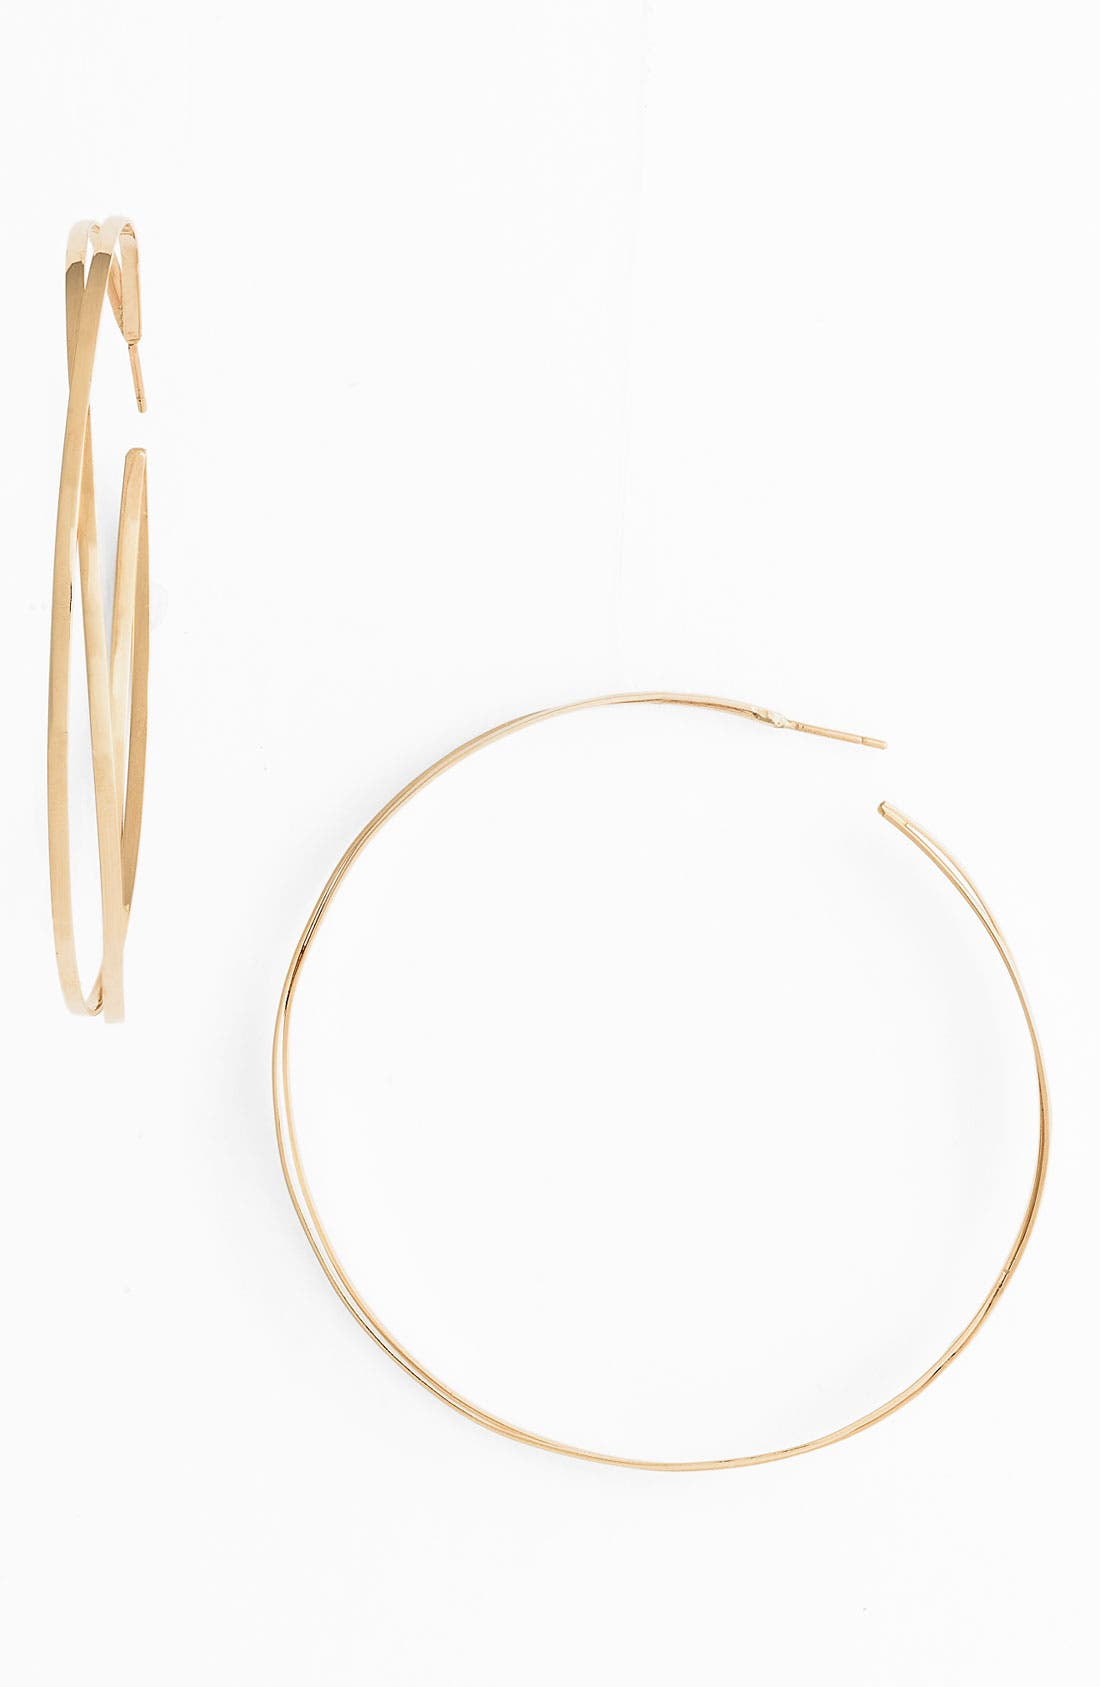 Alternate Image 1 Selected - Lana Jewelry 'Decades' Twisted Hoop Earrings